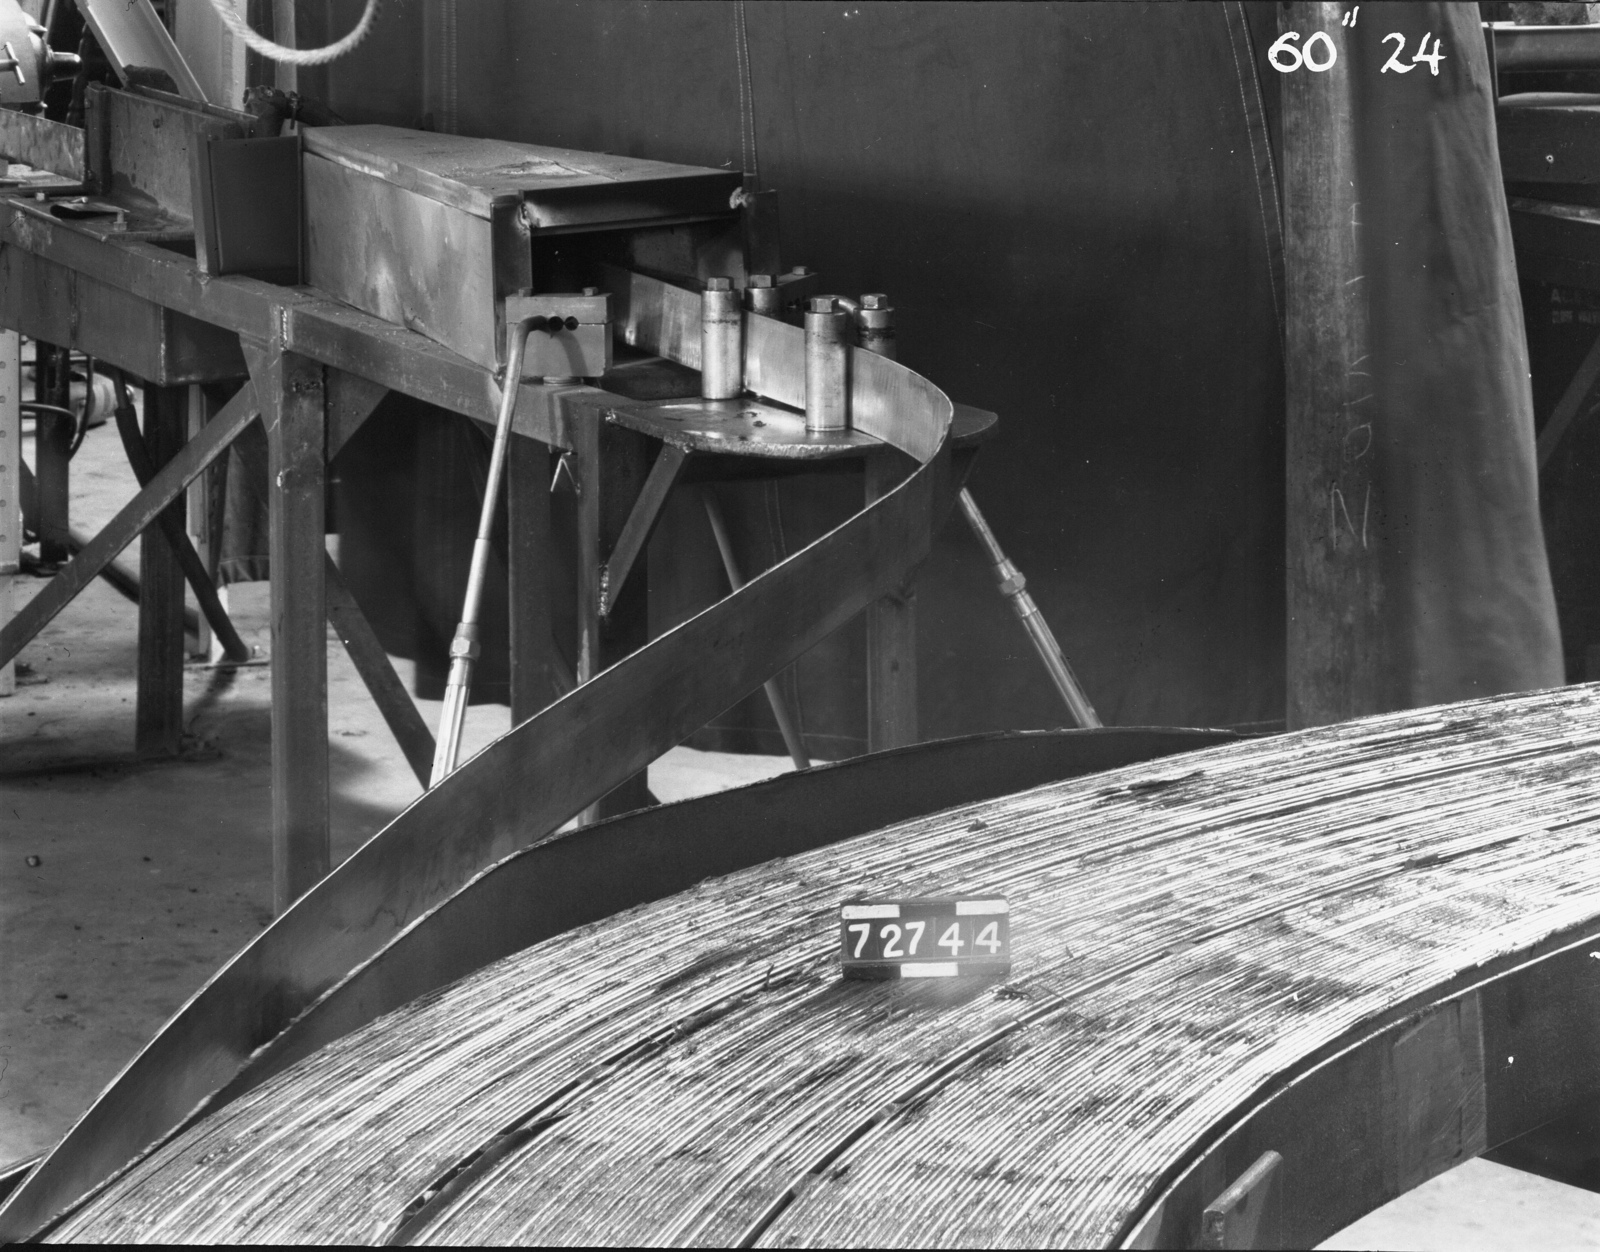 """Progression of copper into annealing furnace from old coil, 60-inch cyclotron. Photo taken 7/27/1944. 60""""-24 Principal Investigator/Project: Crocker Lab/60-inch"""